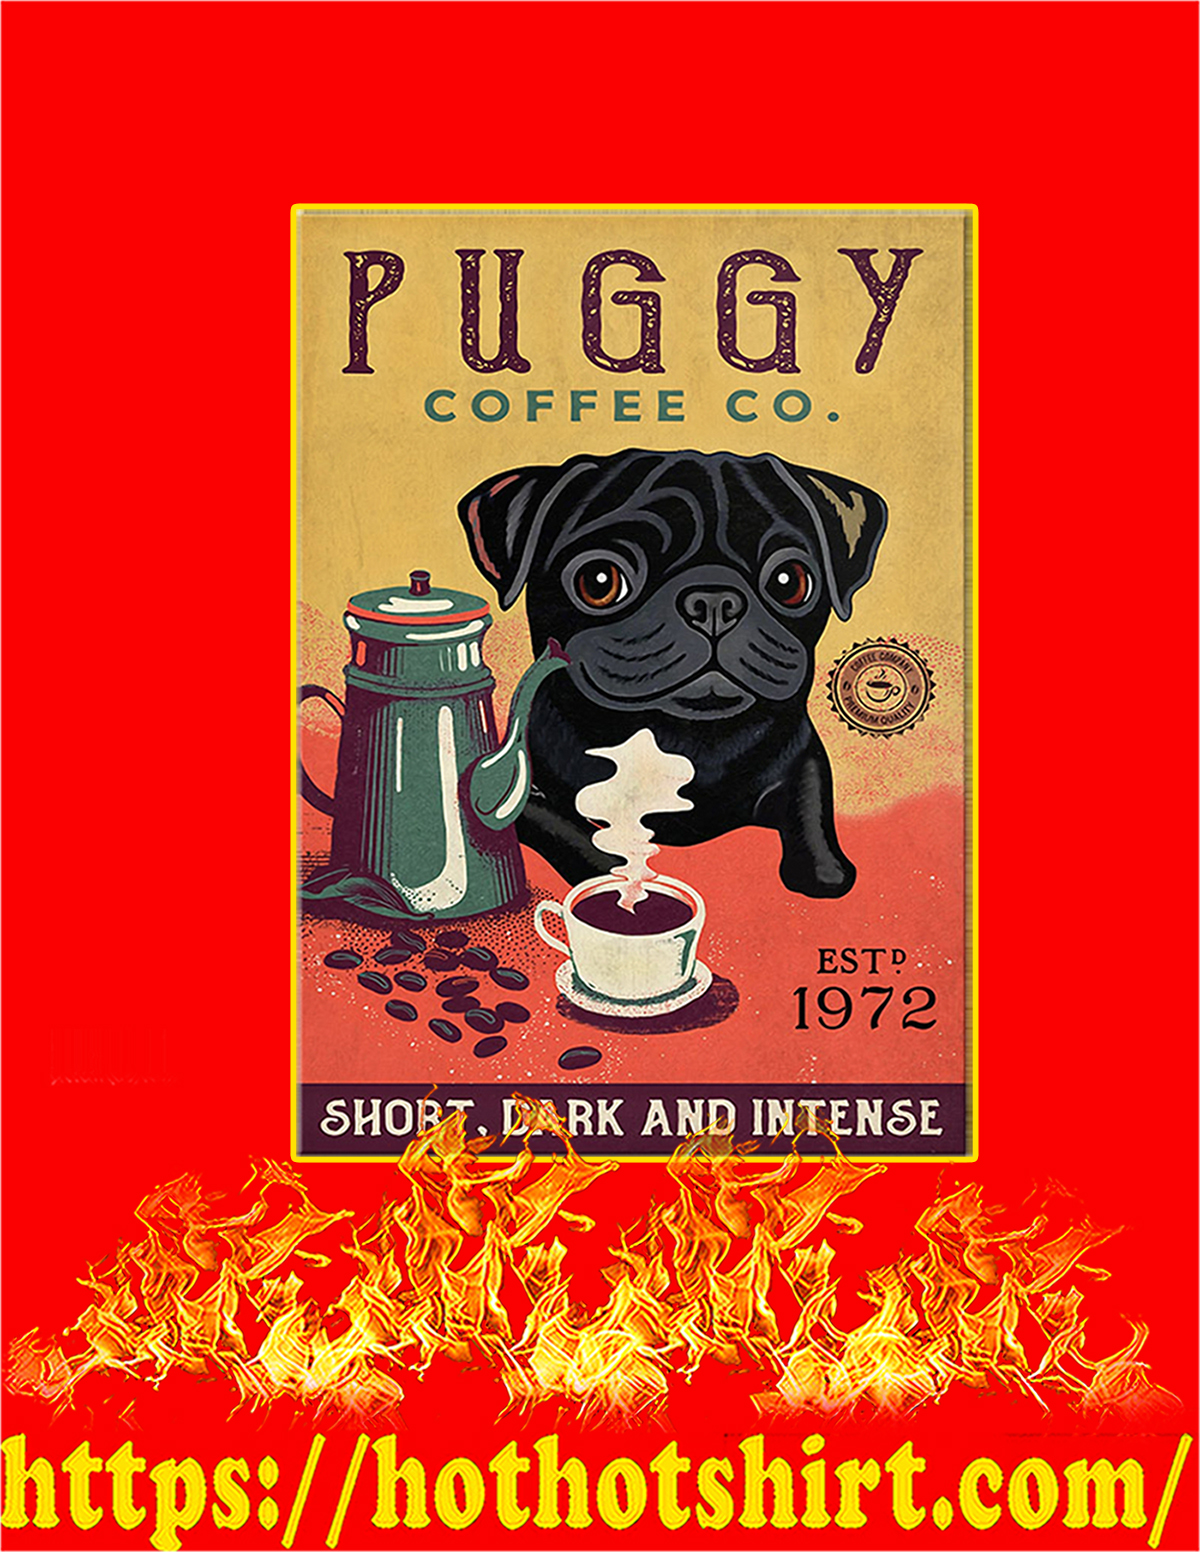 Puggy coffee co poster - A4